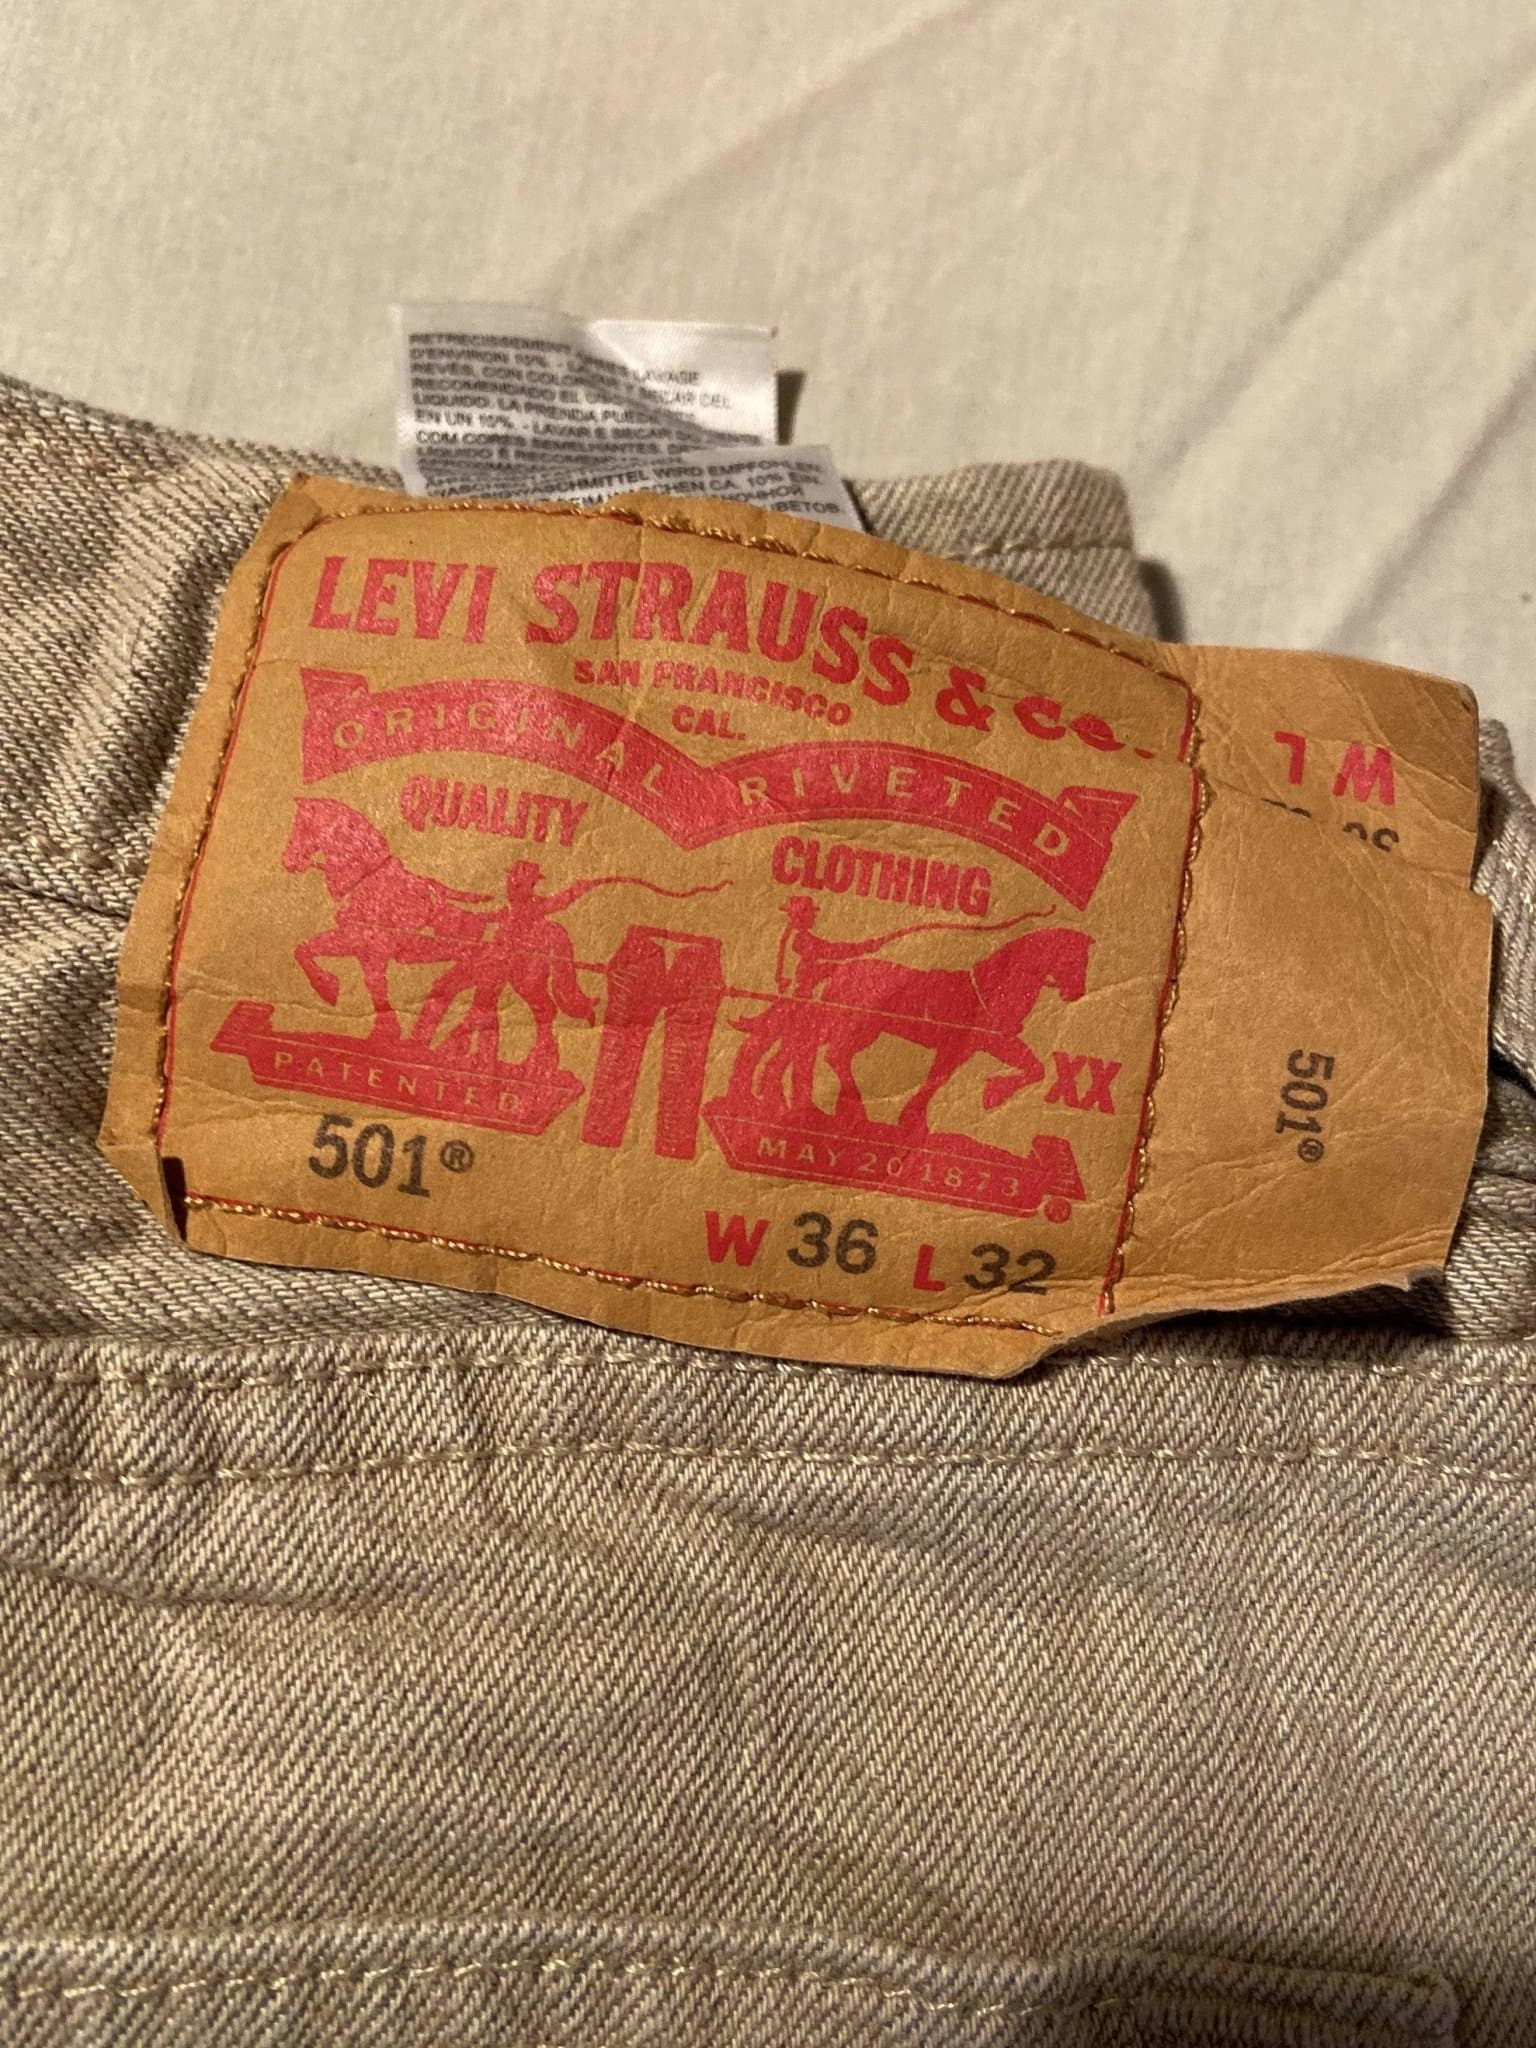 Grade A Levi's Original 501 Regular Fit Jeans W36 L32 (DF5) - Discounted Deals UK